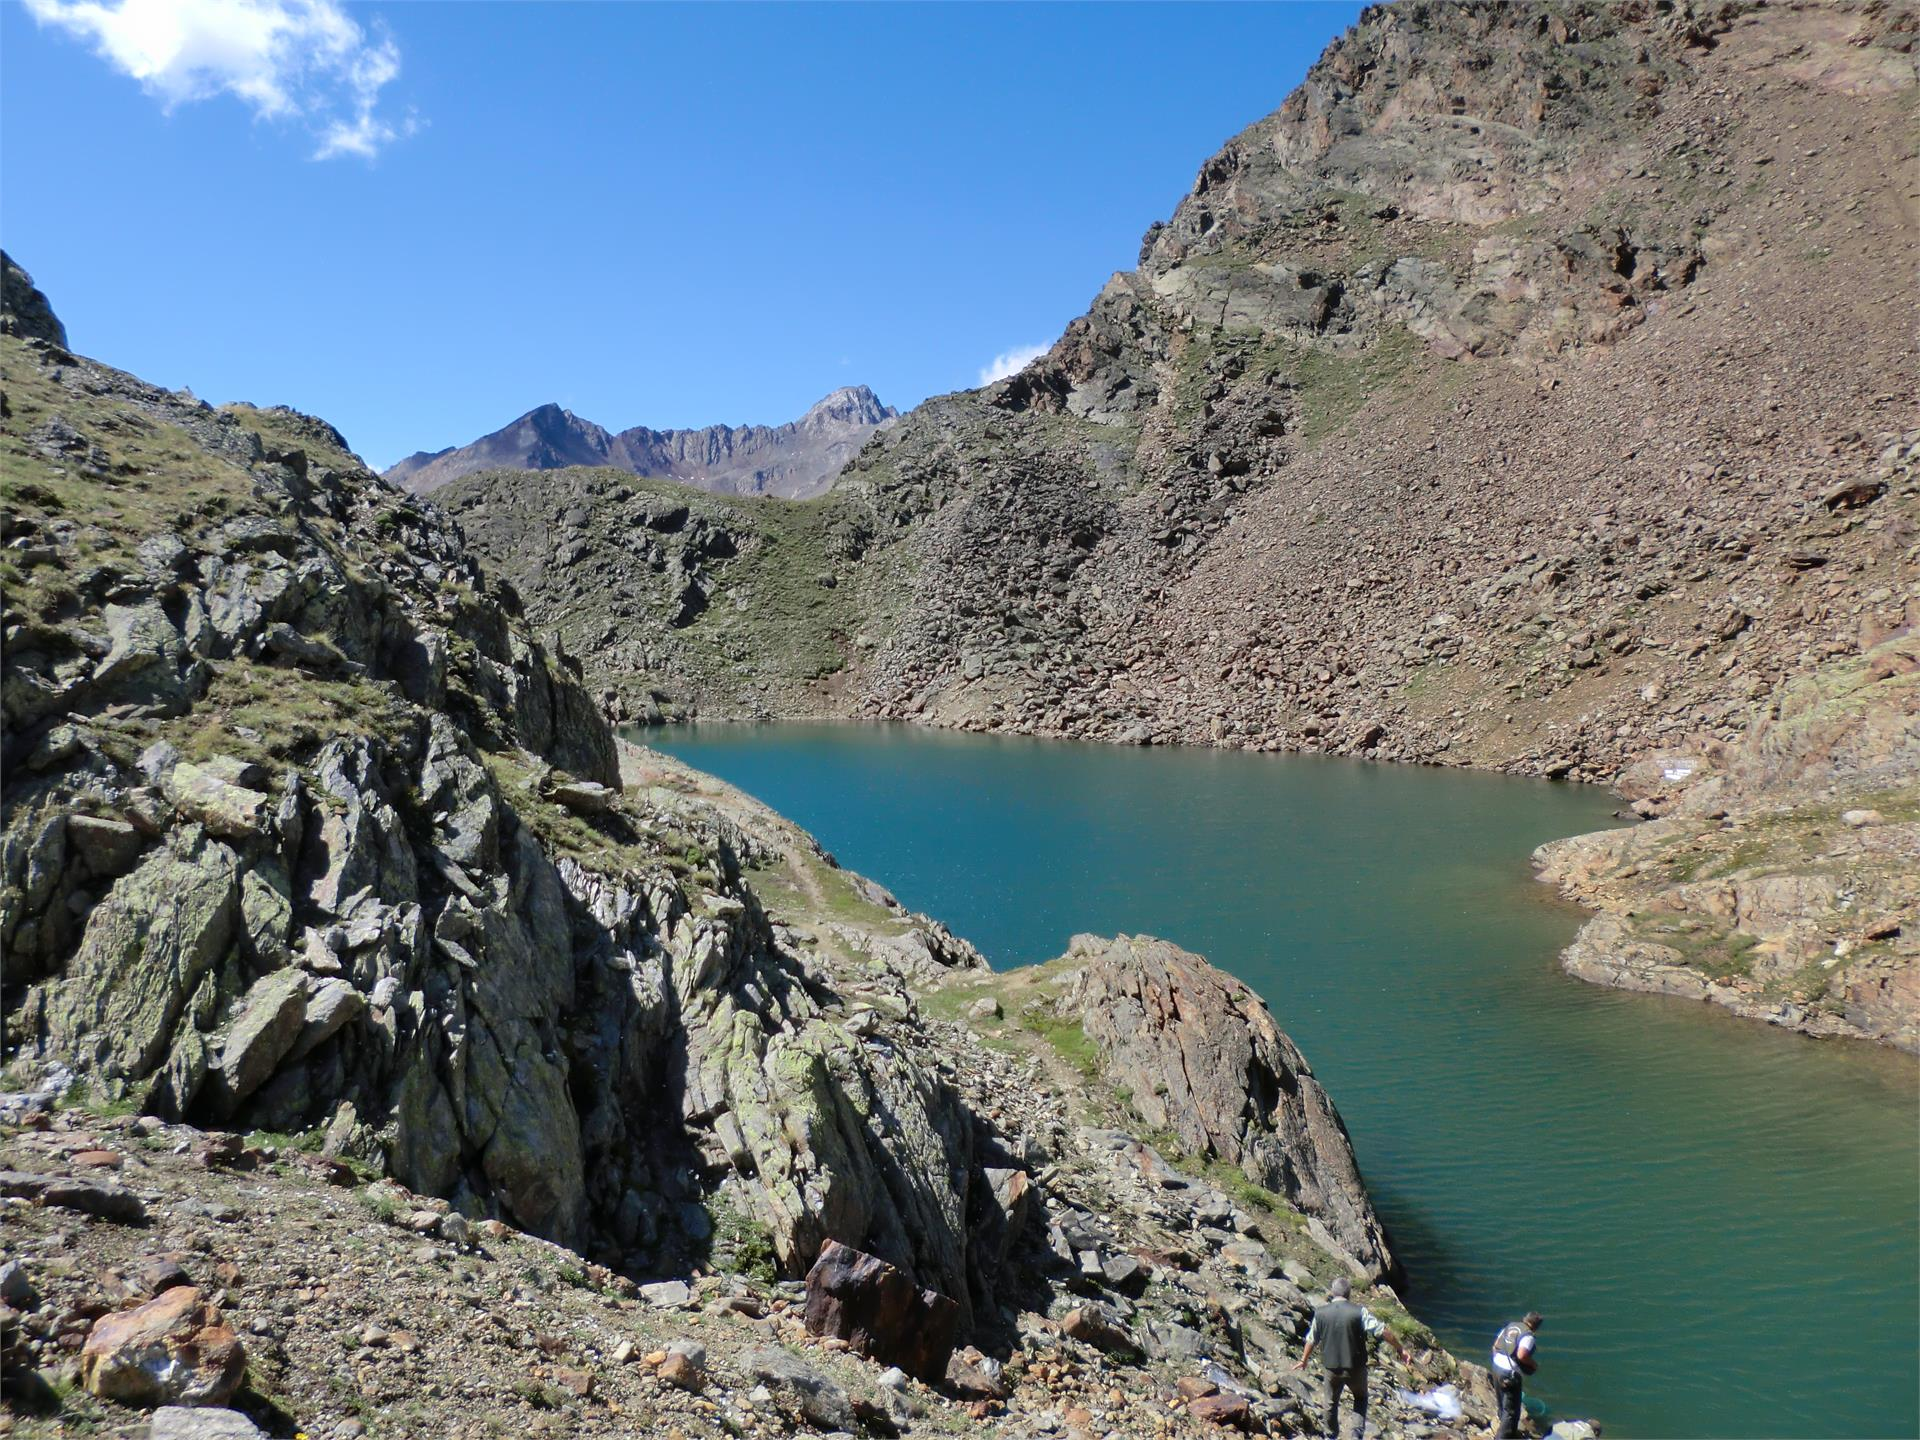 Tour to the Saldura Lakes